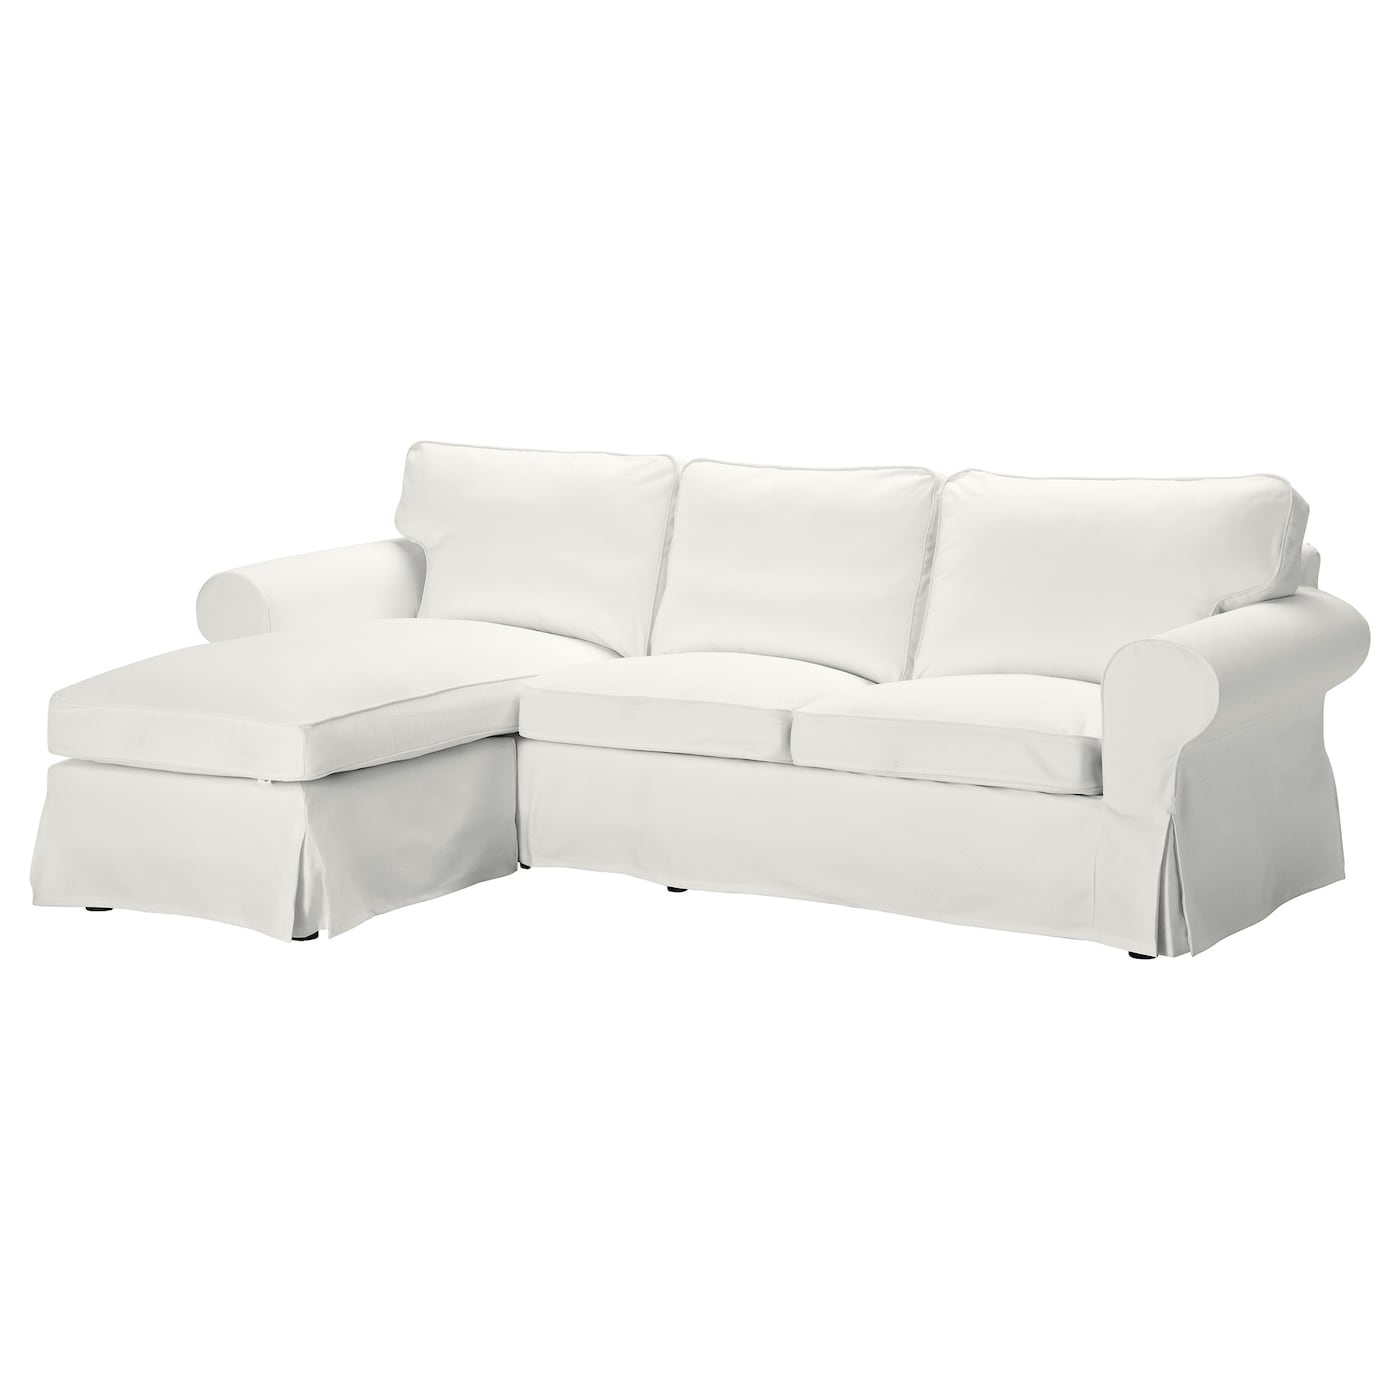 Ektorp two seat sofa and chaise longue blekinge white ikea - Chaise longue exterieur ikea ...